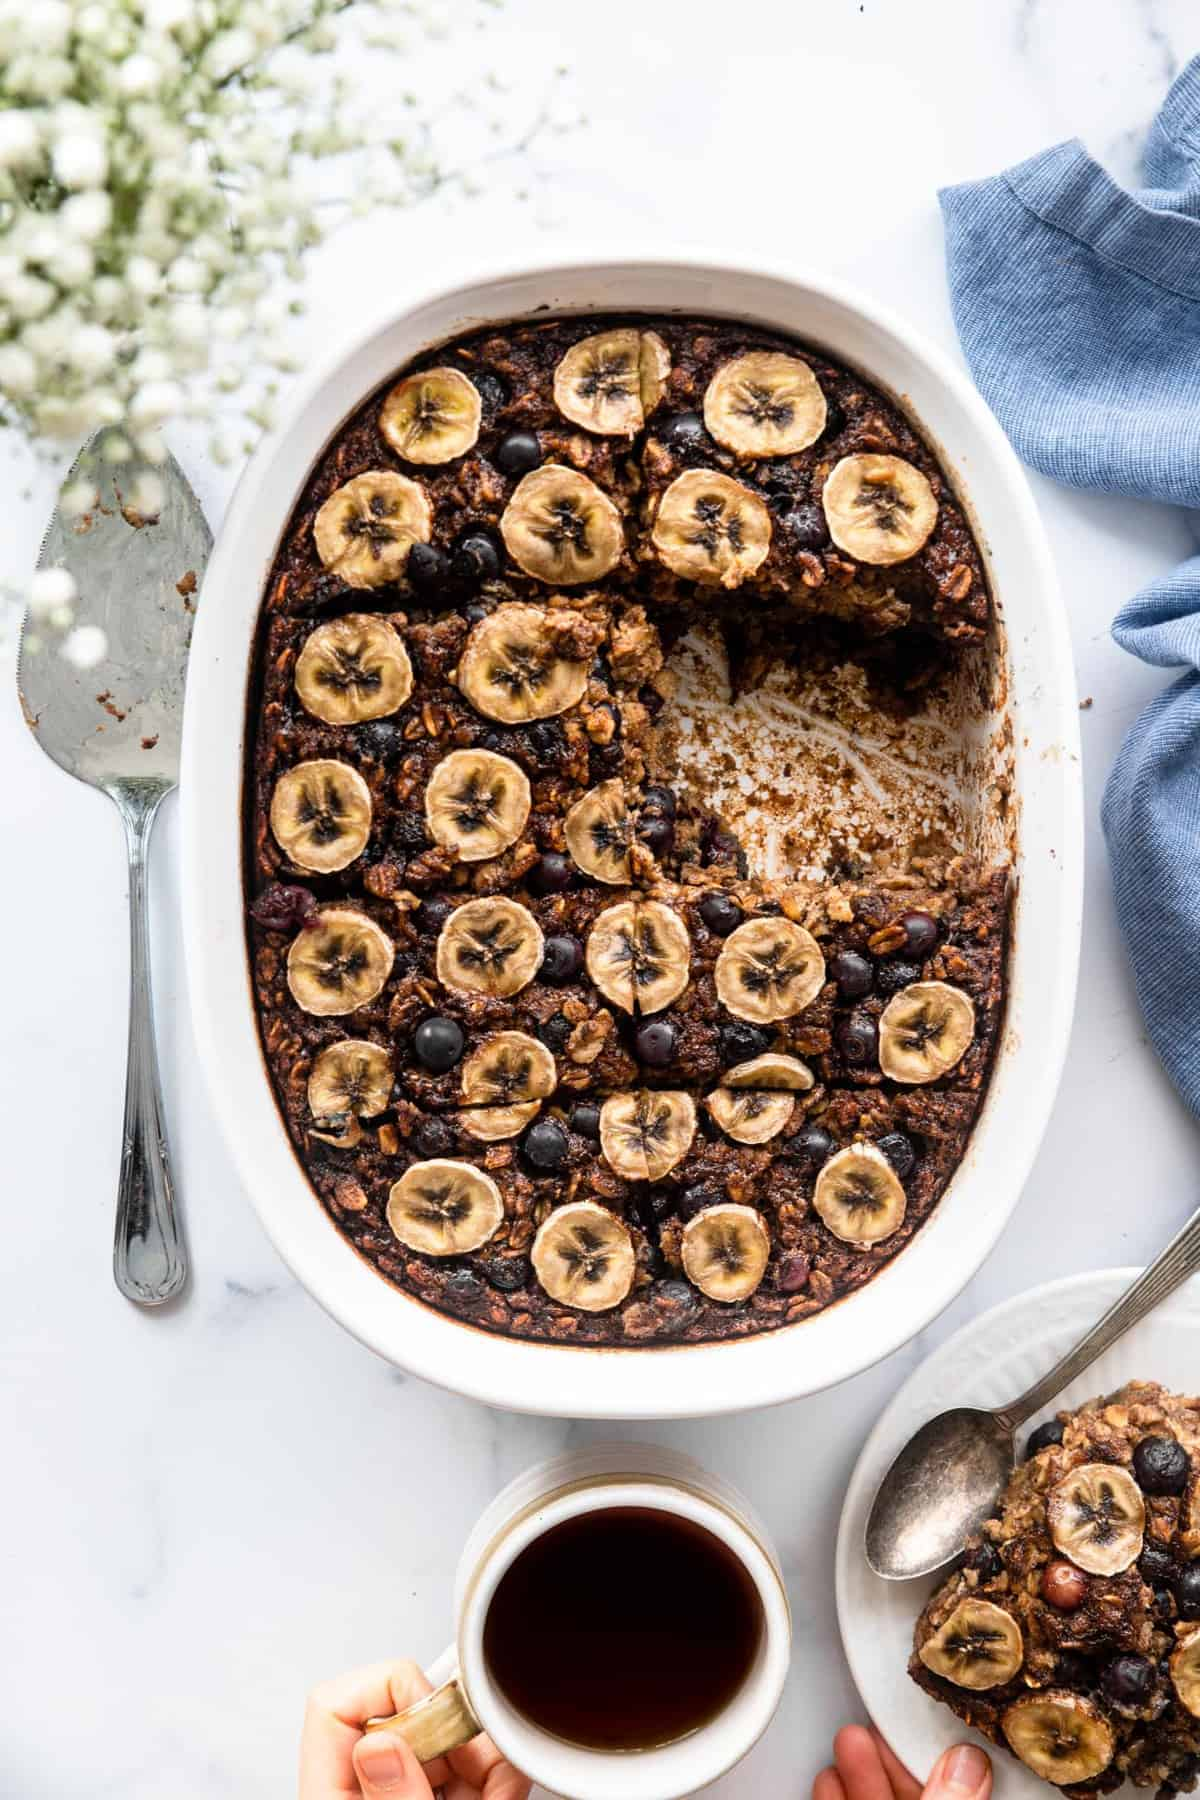 Blueberry baked oatmeal recipe ready to be eaten with a spoon on a table